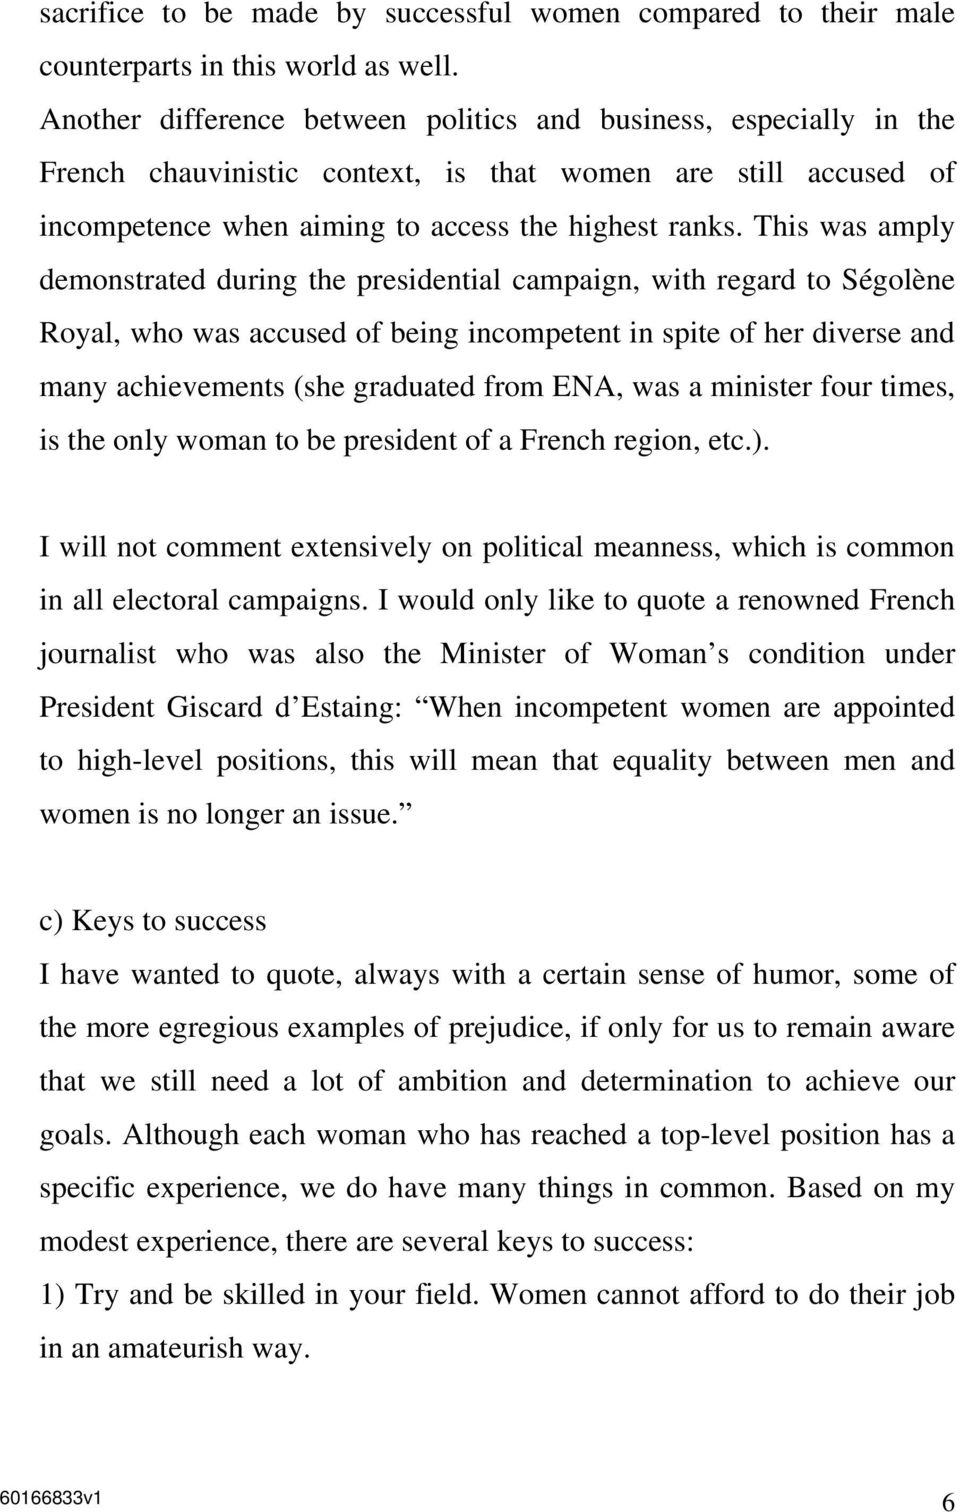 This was amply demonstrated during the presidential campaign, with regard to Ségolène Royal, who was accused of being incompetent in spite of her diverse and many achievements (she graduated from